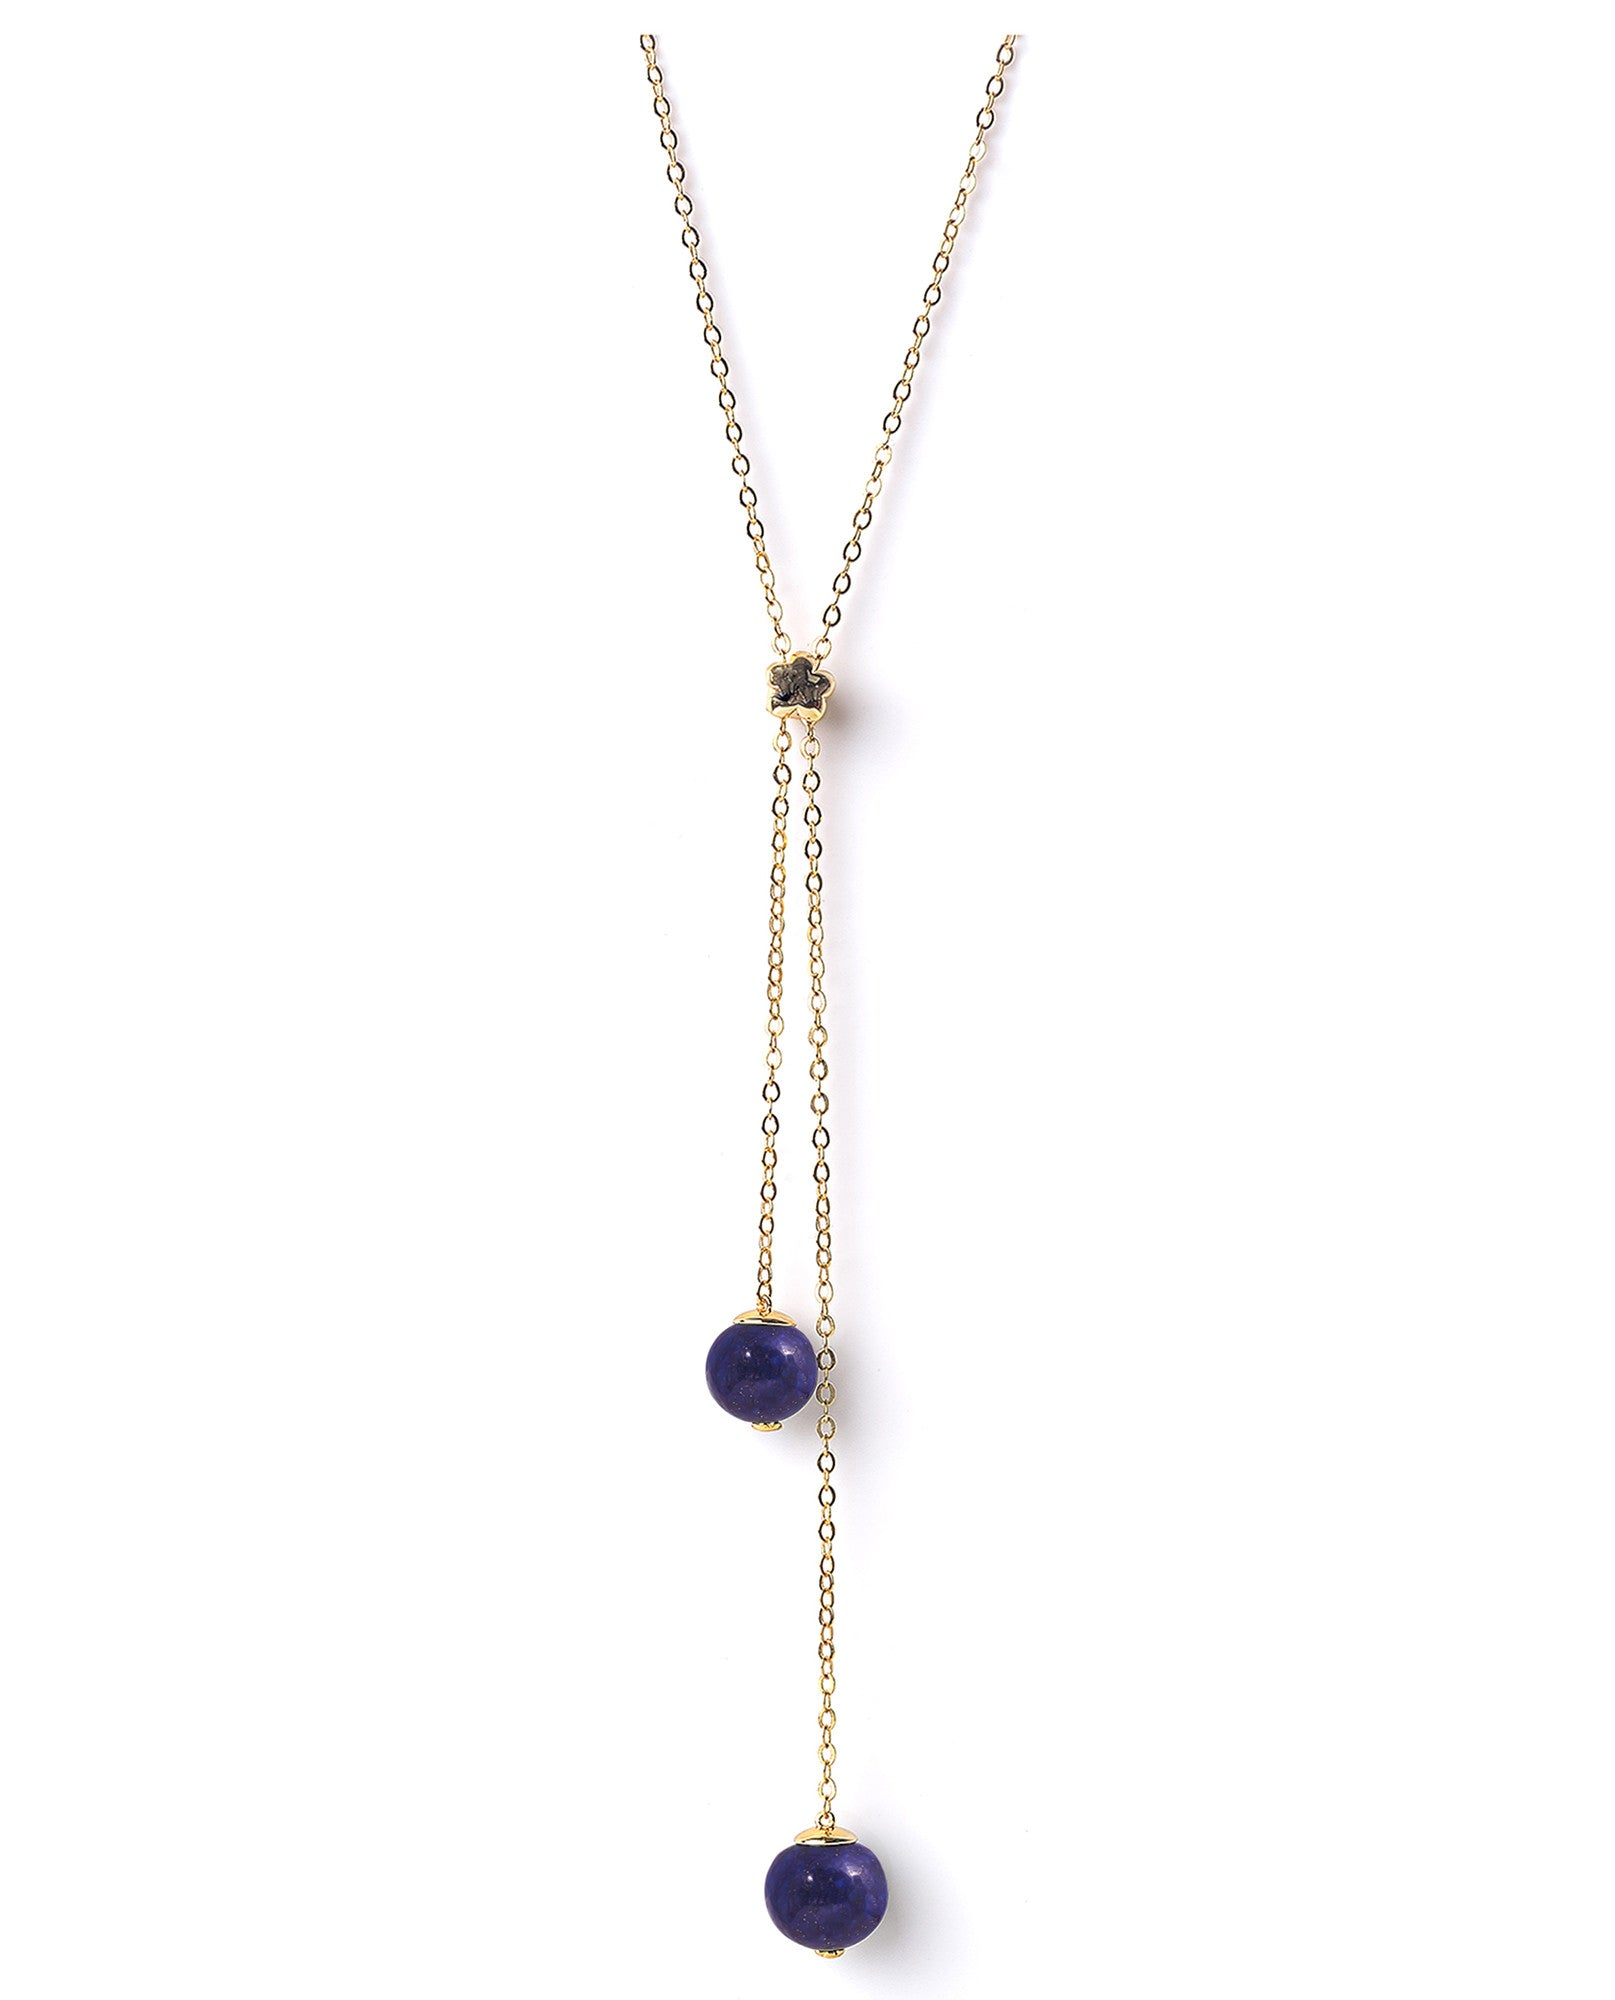 Meriko London - Lapis lazuli long lariat necklace - The Velvet Closet - 1